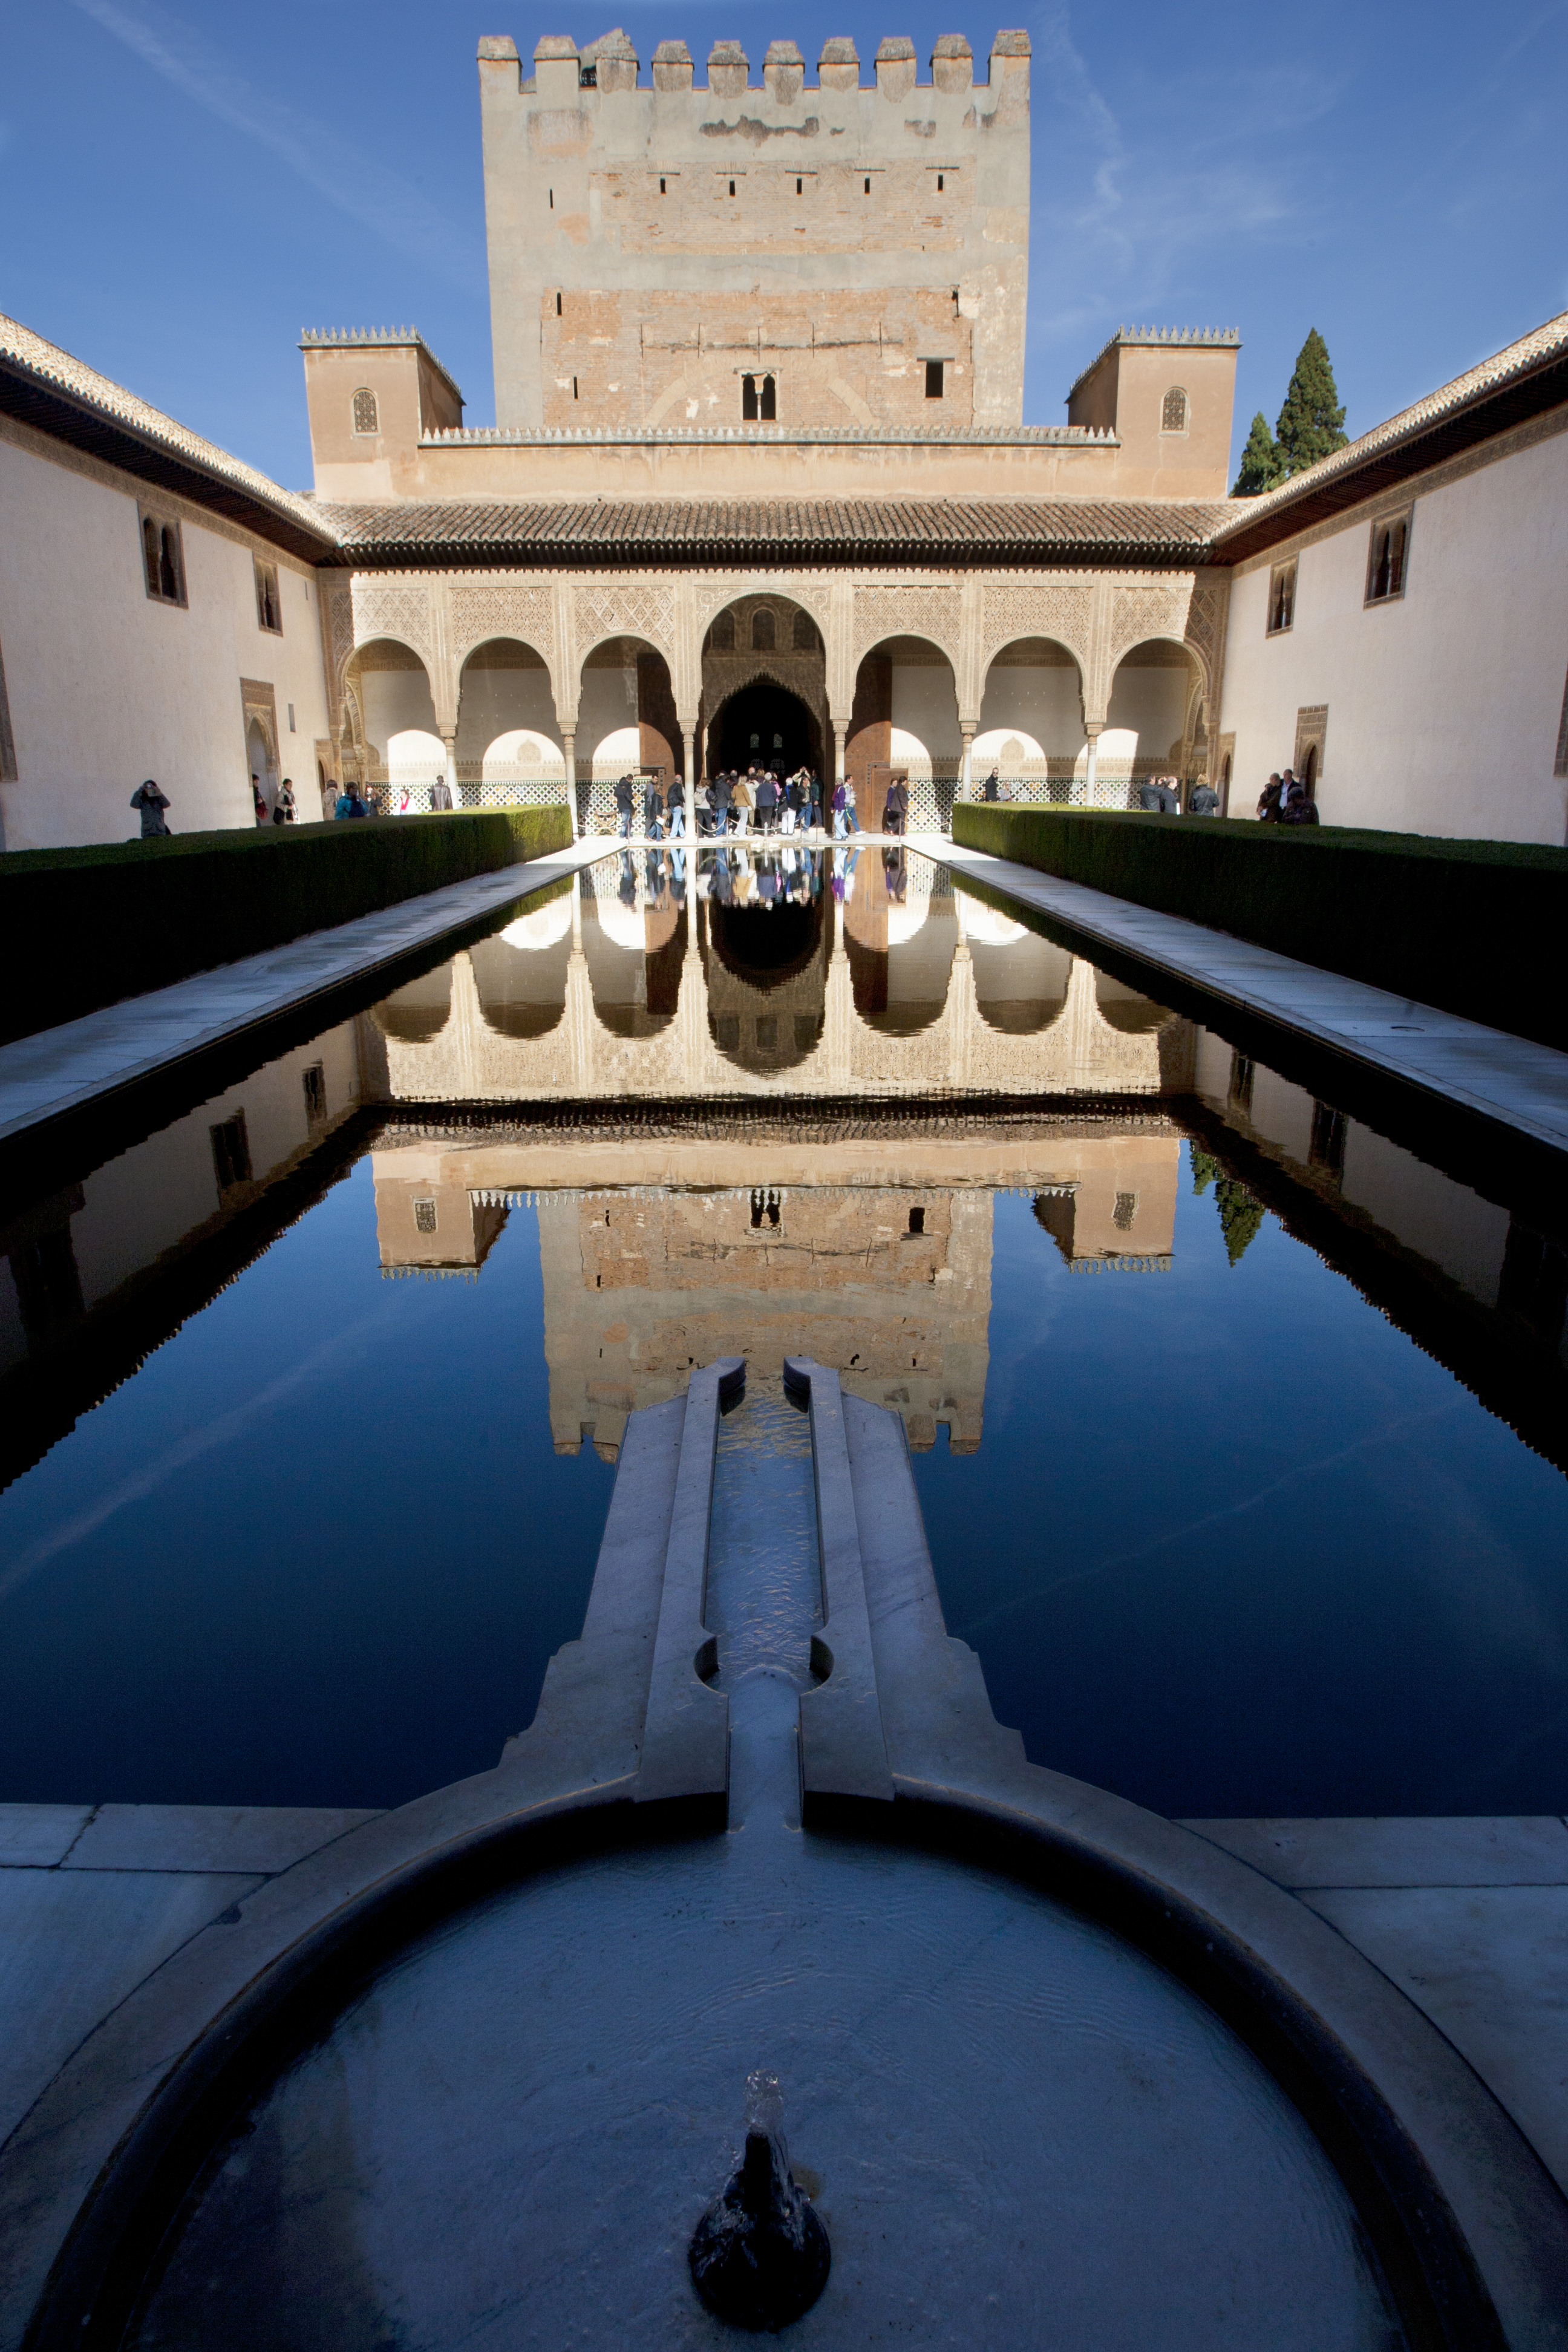 The Alhambra, favourite tourist destination for Internet users